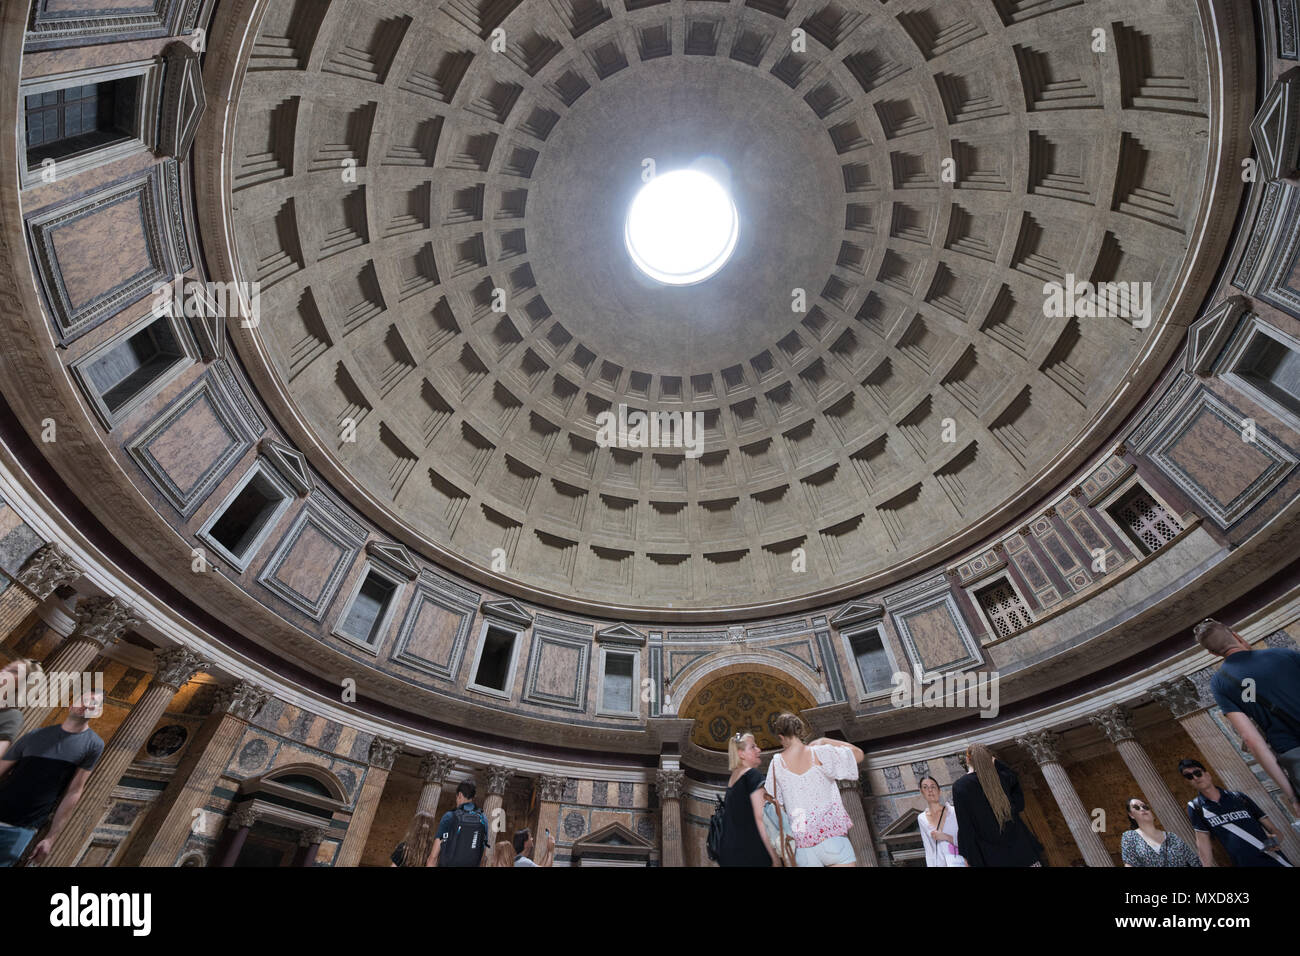 Rome Pantheon interior, light true the hole, tourists visiting Stock Photo